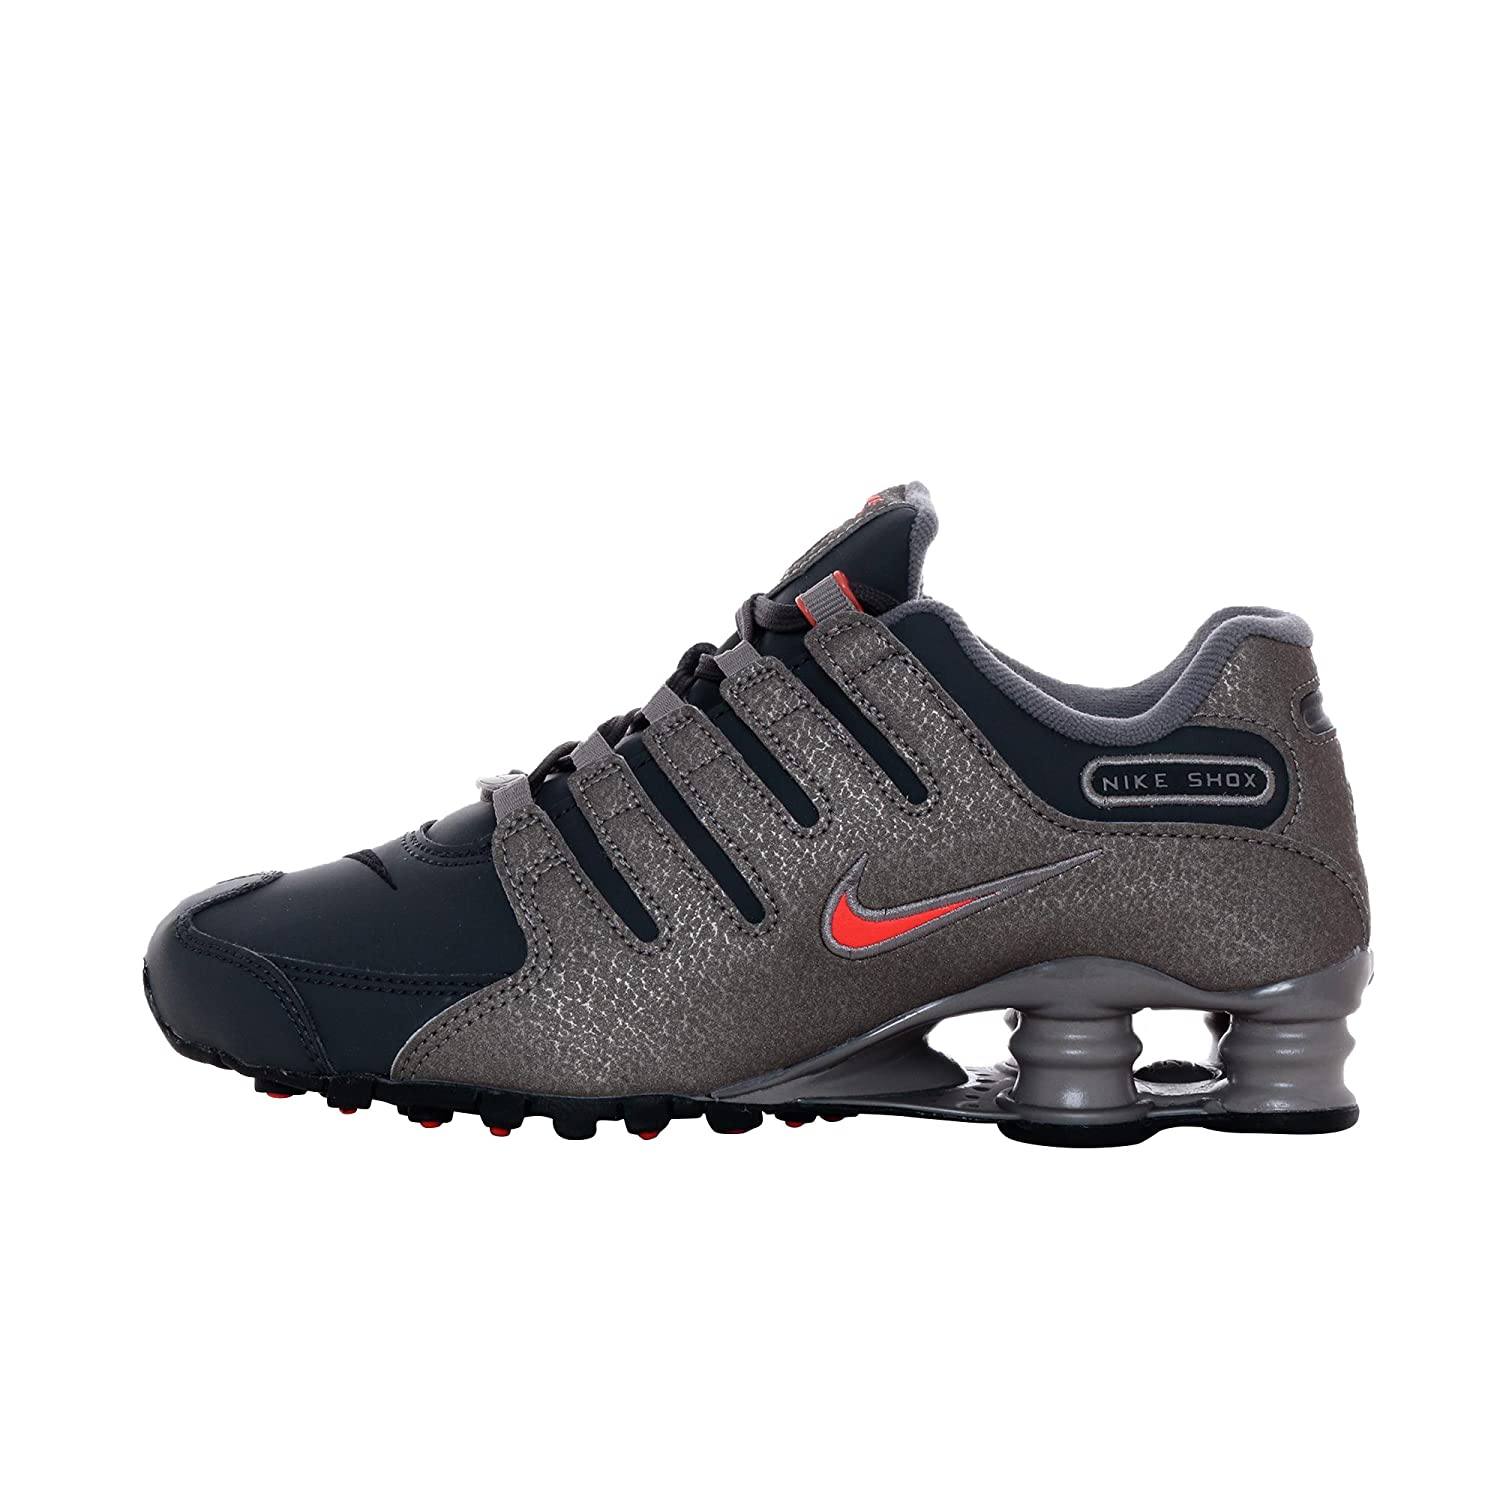 4810cf9b9015 ... promo code for sale amazon nike womens shox nz sneakers new pewter  brown crimson 636088 003